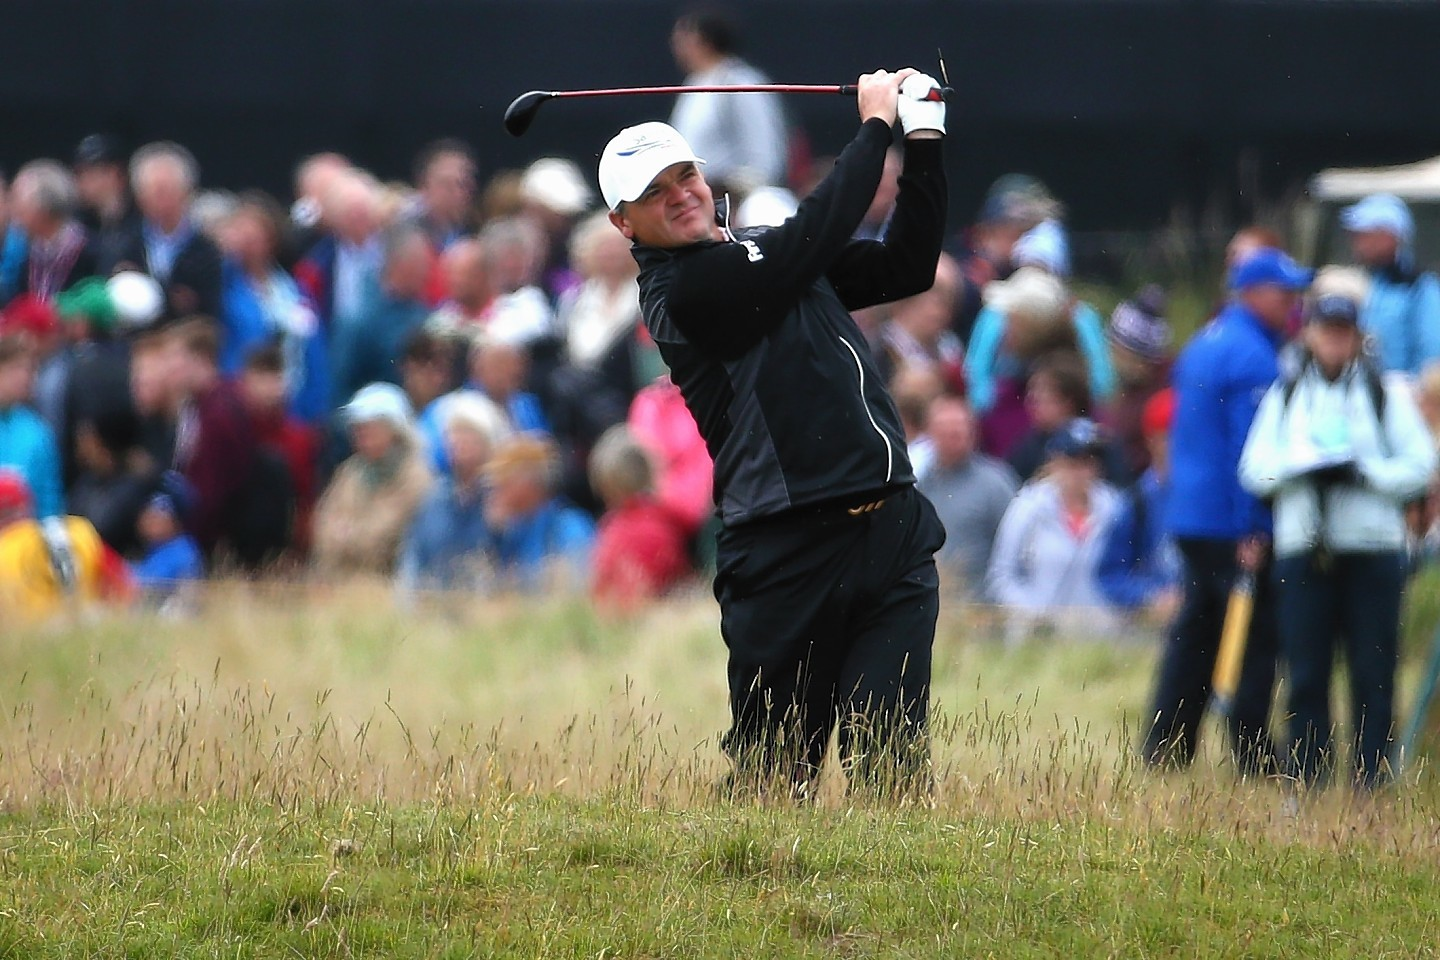 Paul Lawrie of Scotland plays his second shot on the 4th hole during the first round of the 144th Open Championship at The Old Course